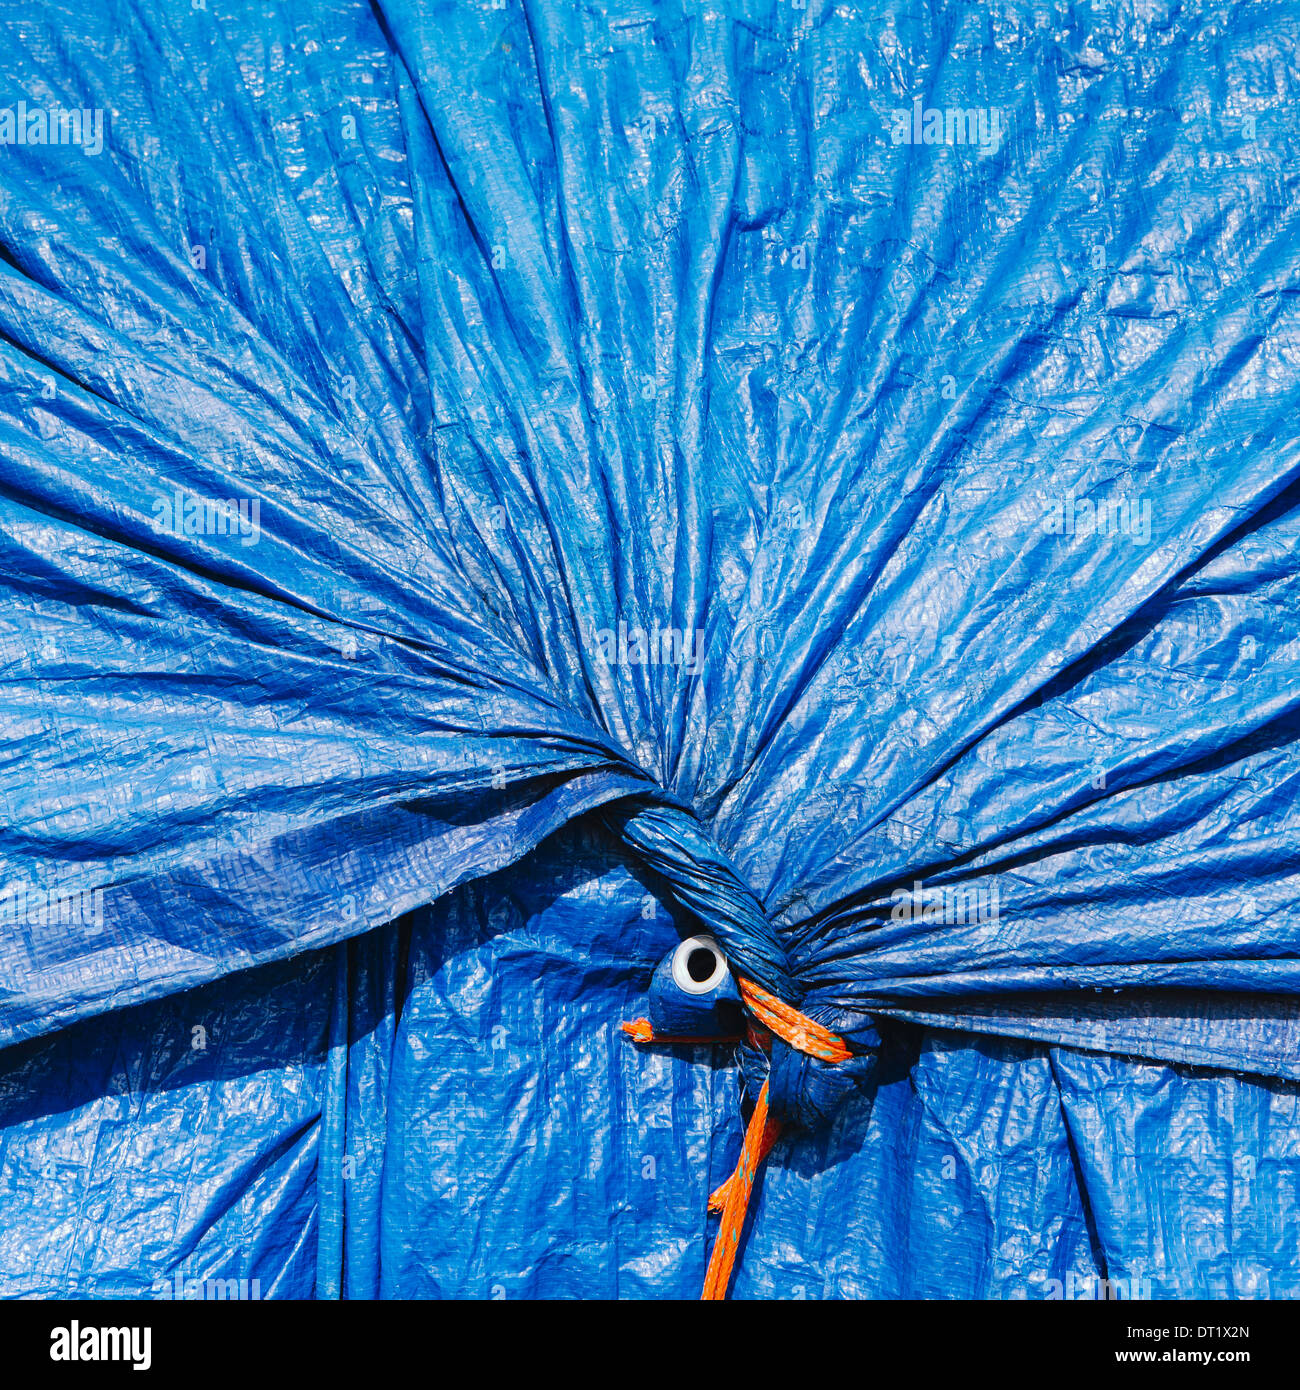 A blue tarpaulin gathered and tied with rope as a covering over piles of commercial fishing nets Fisherman's Terminal Seattle - Stock Image